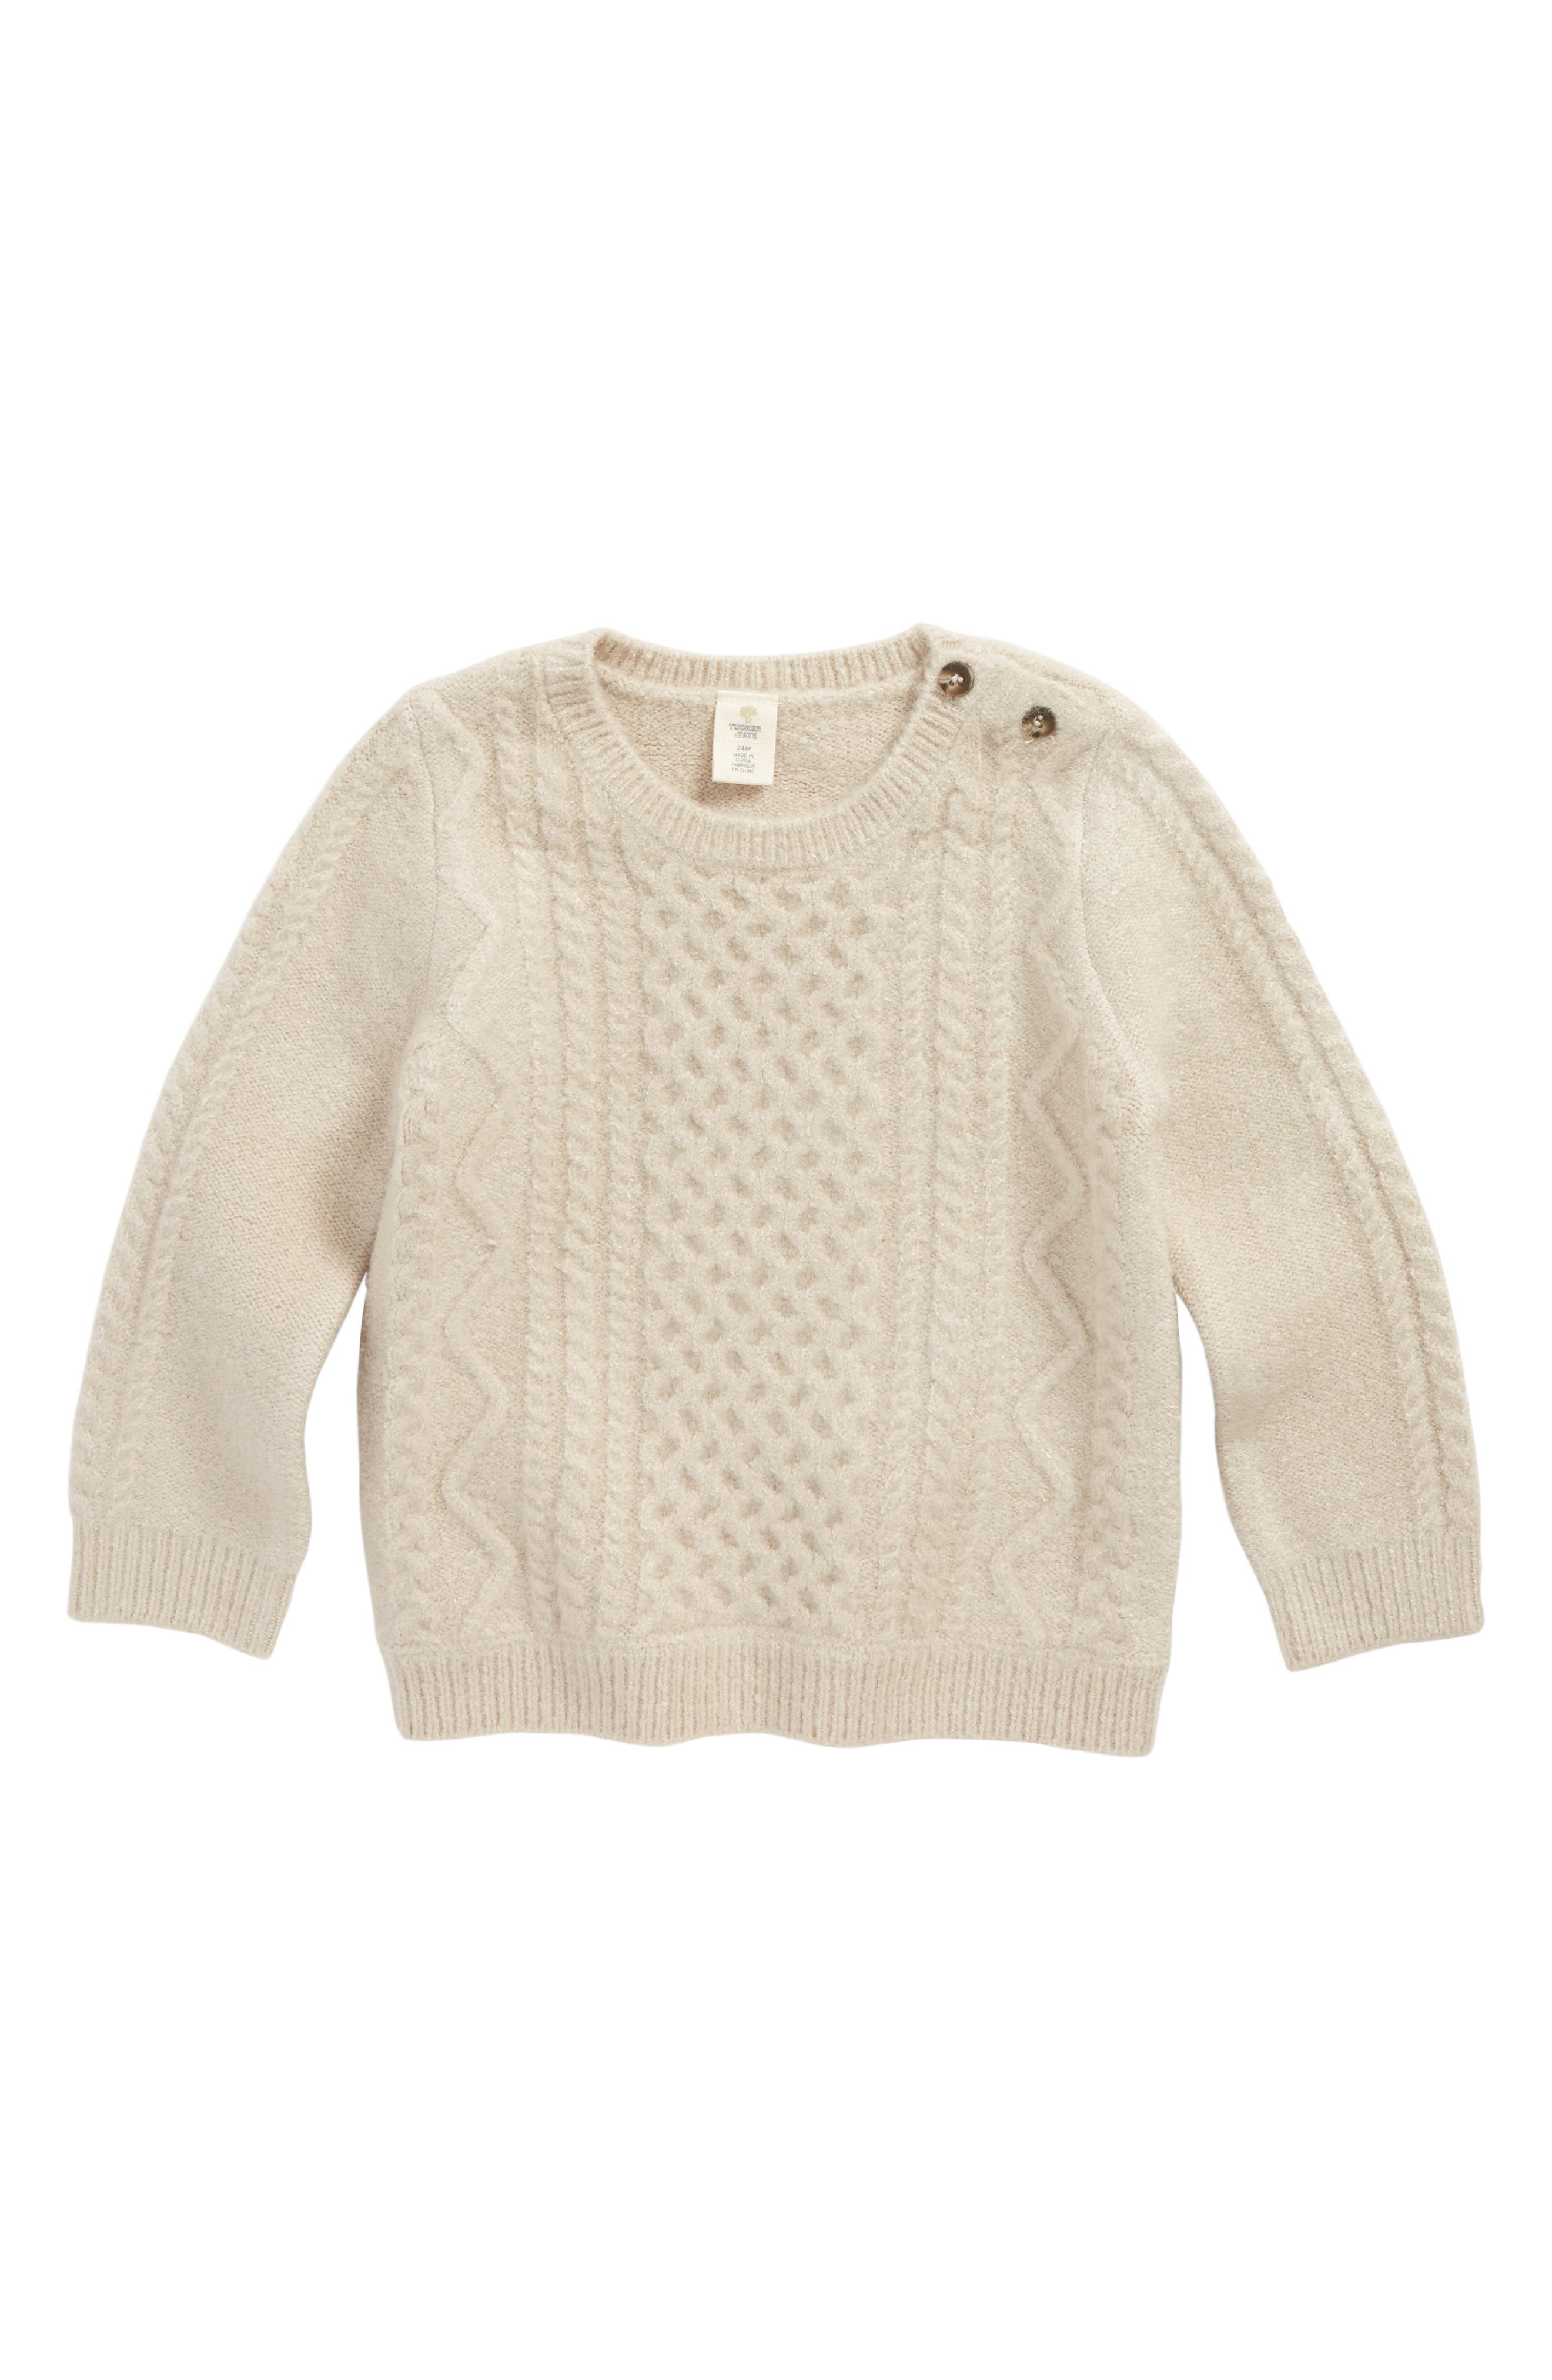 TUCKER + TATE,                             Cable Sweater,                             Main thumbnail 1, color,                             900